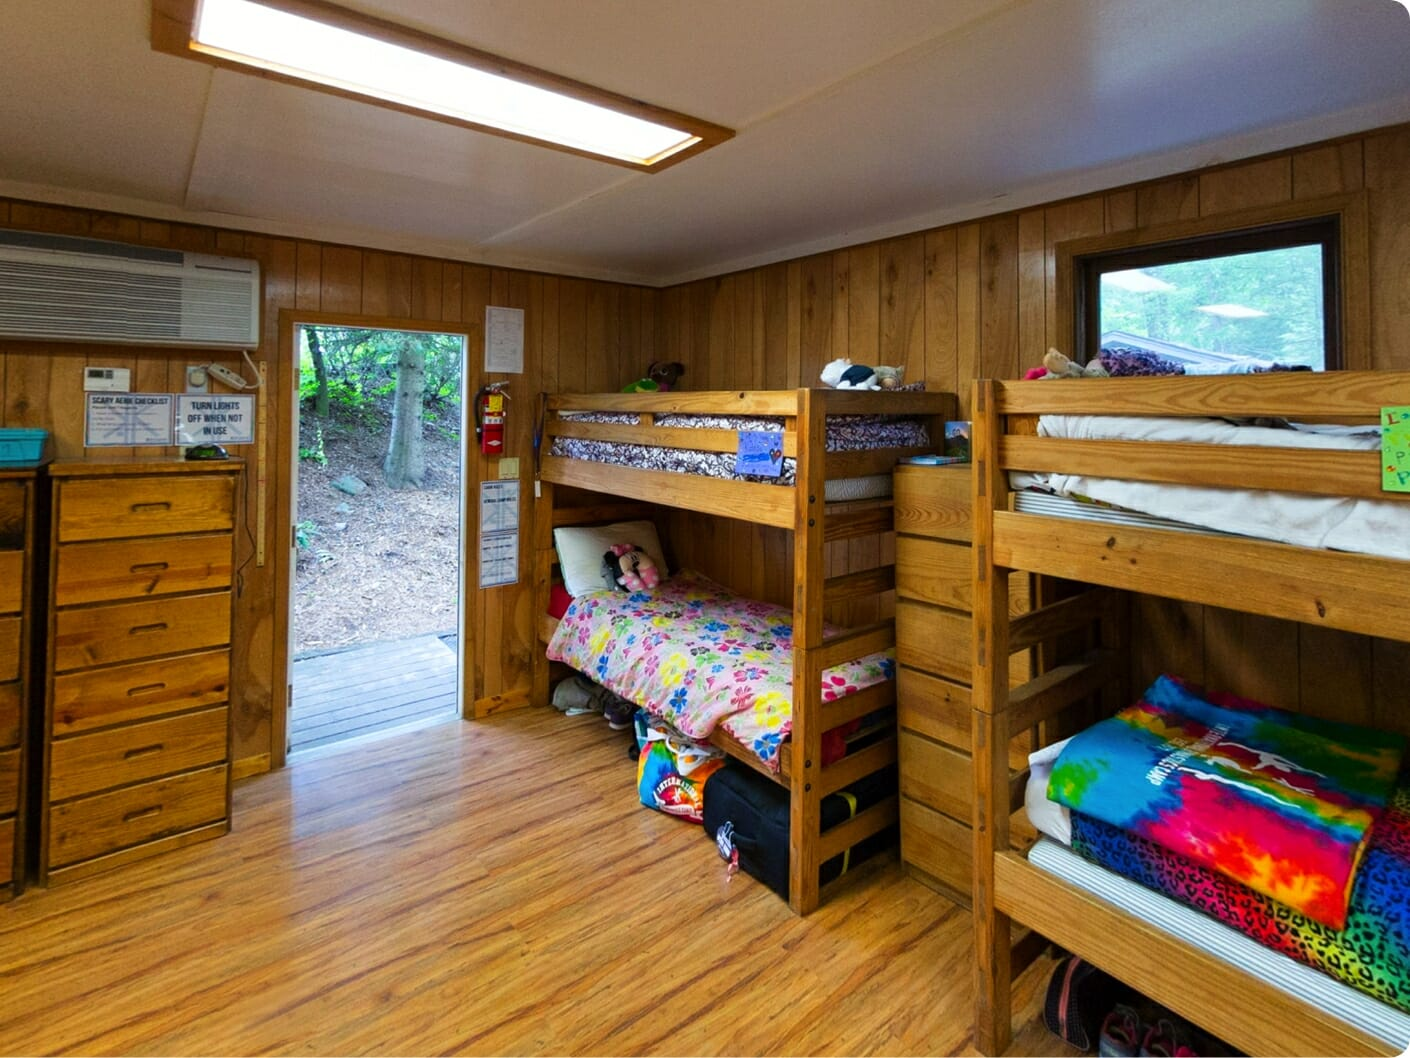 interior of one of the cabins with bunk beds